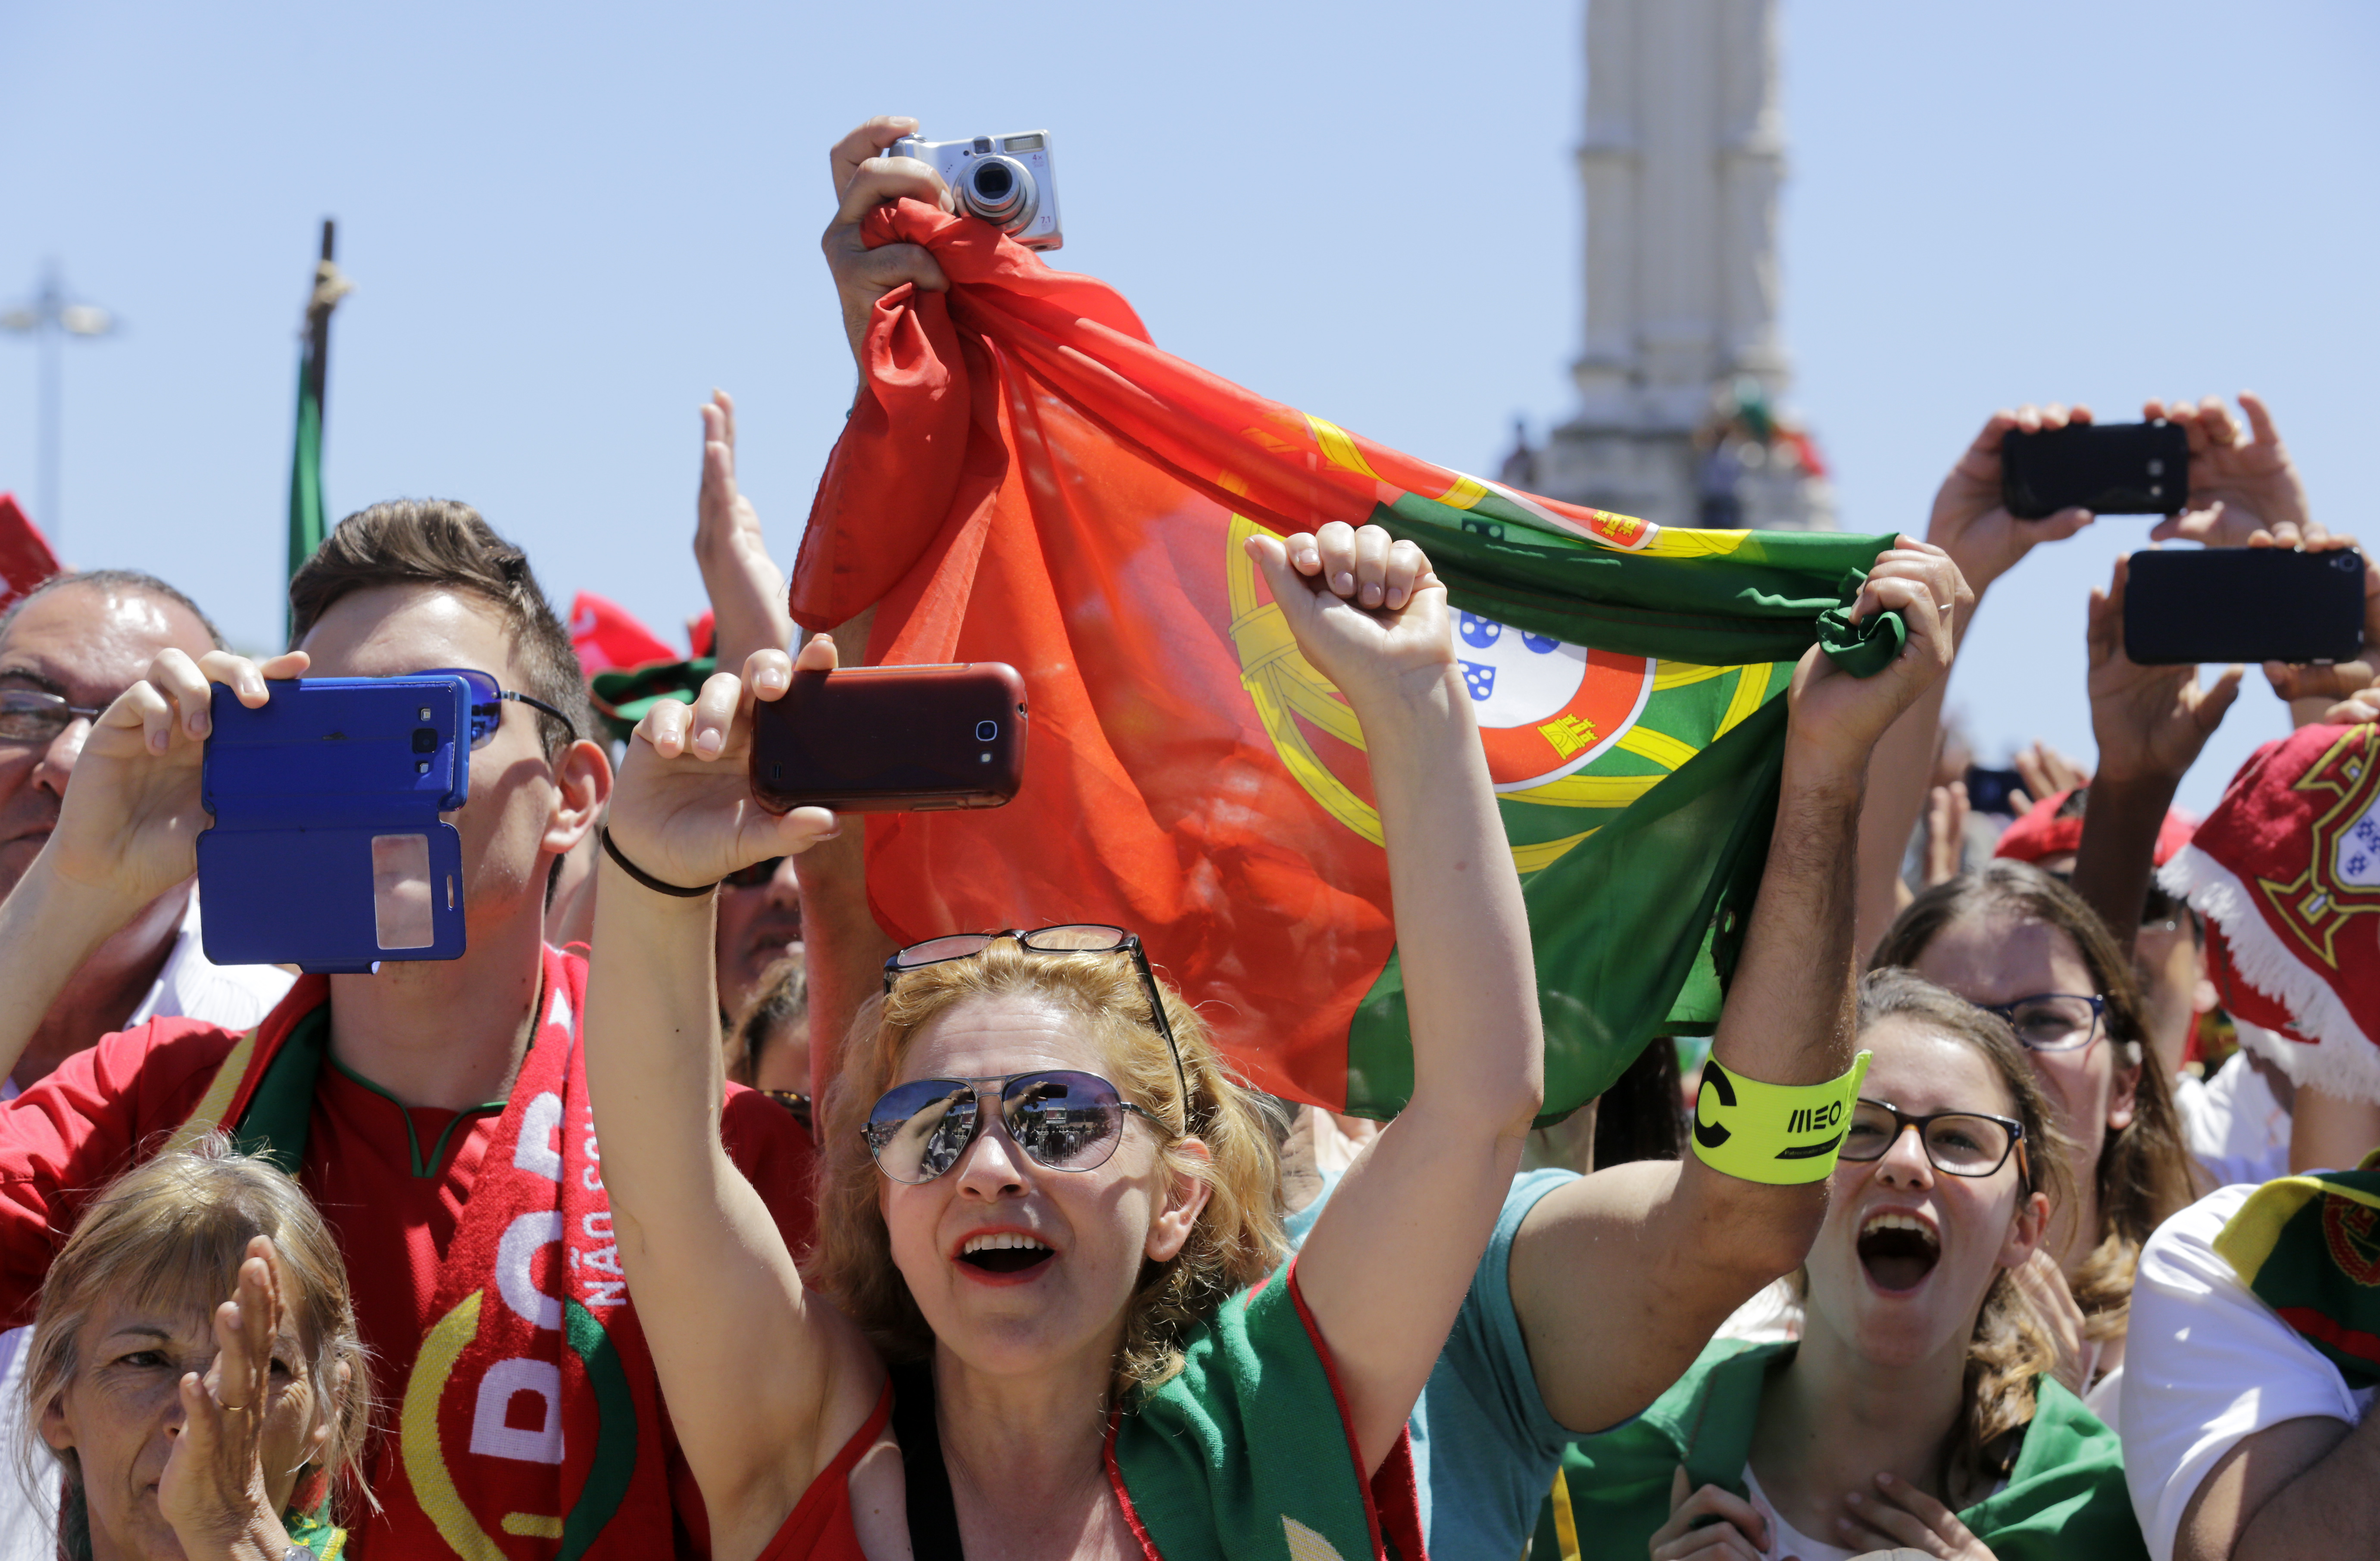 Portugal's national football supporters welcome their team at the presidential palace to celebrate their victory on July 11, 2016 after their Euro 2016 final football win over France yesterday. The Portuguese football team led by Cristiano Ronaldo returned home to a heroes' welcome today after their upset 1-0 win triumph over France in the Euro 2016 final.  / AFP PHOTO / JOSE MANUEL RIBEIRO